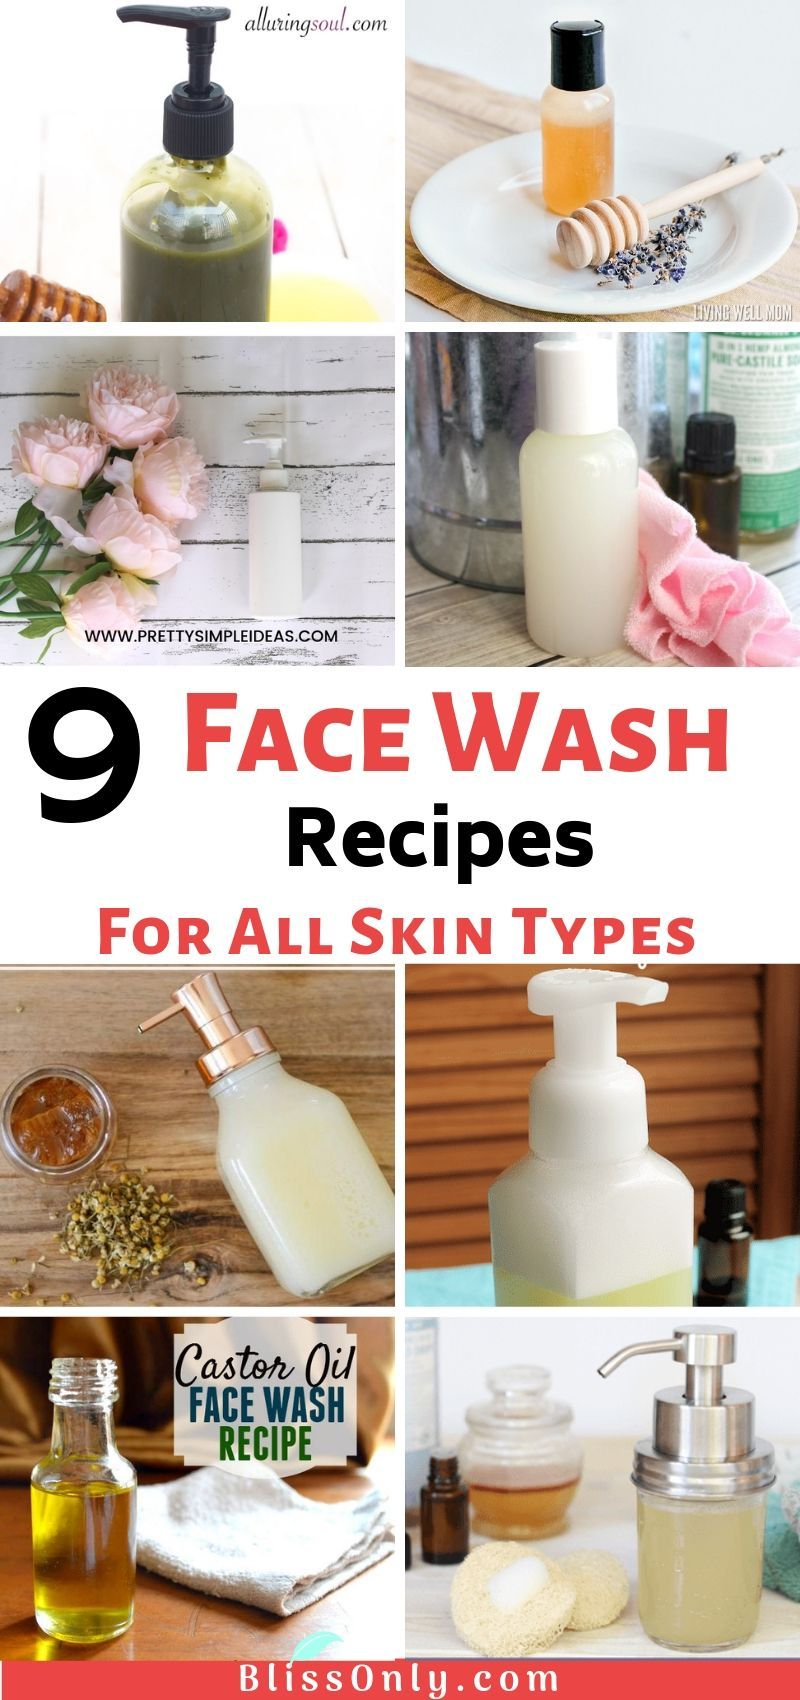 9 DIY Face Wash Recipes For All Skin Types Face wash